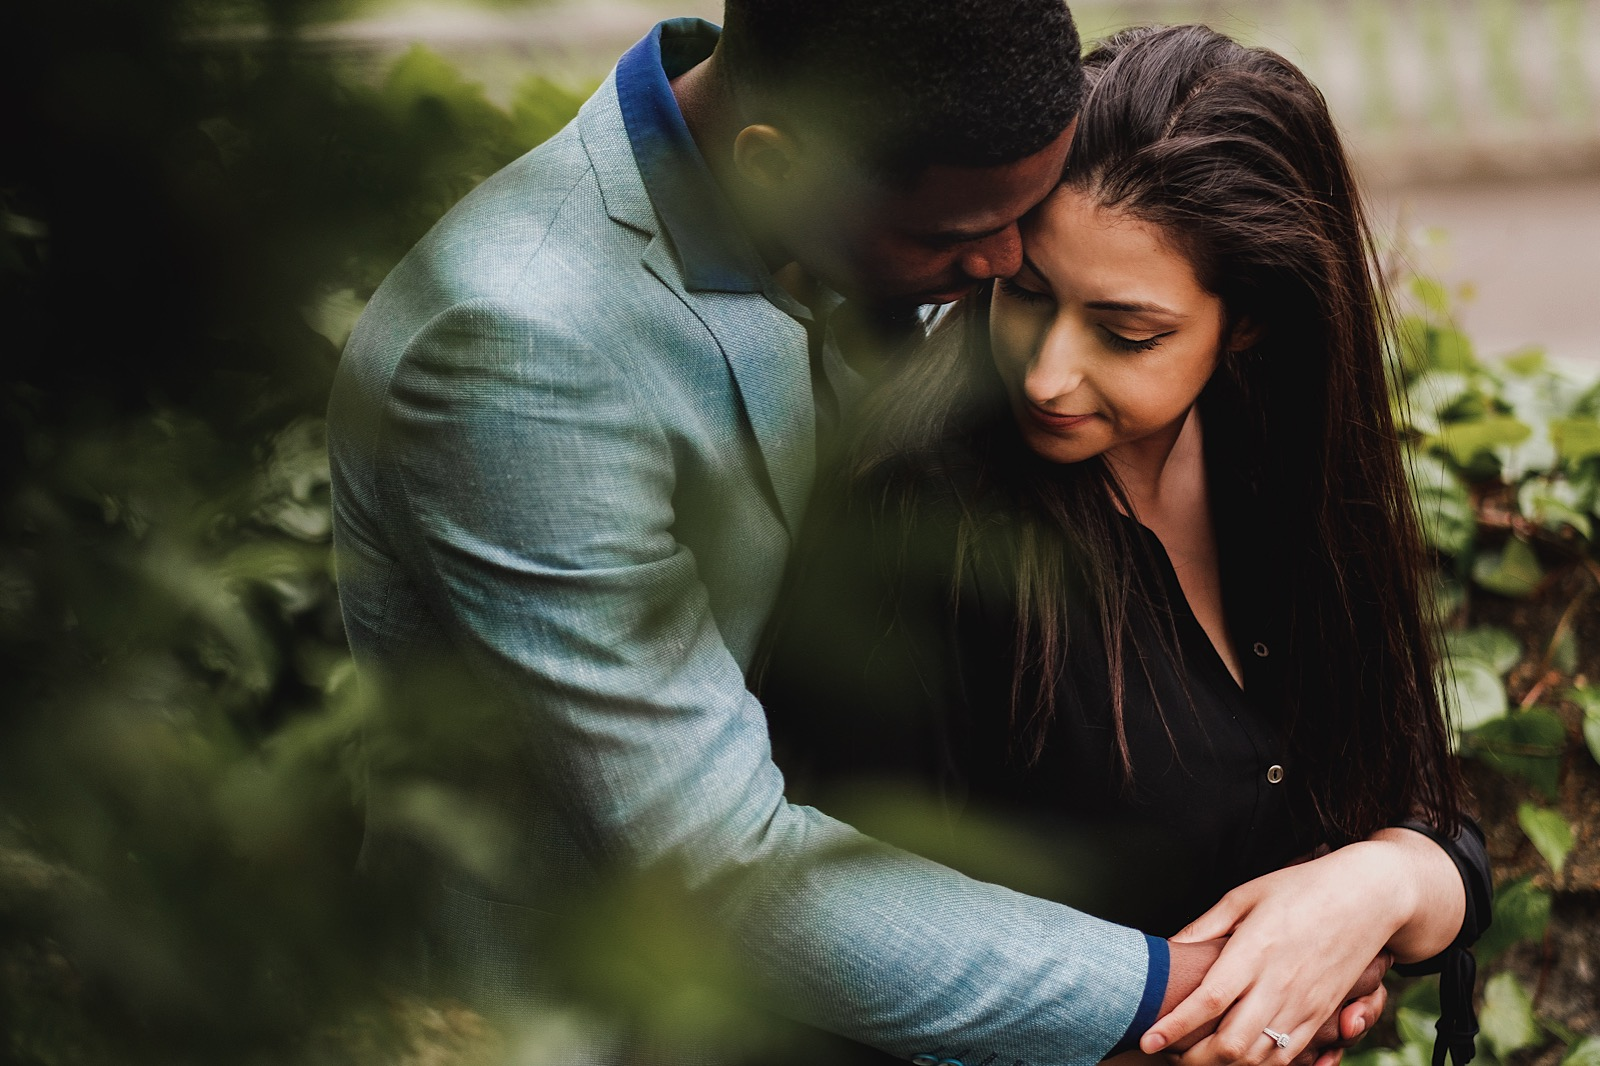 man embracing fiancee resting their heads together